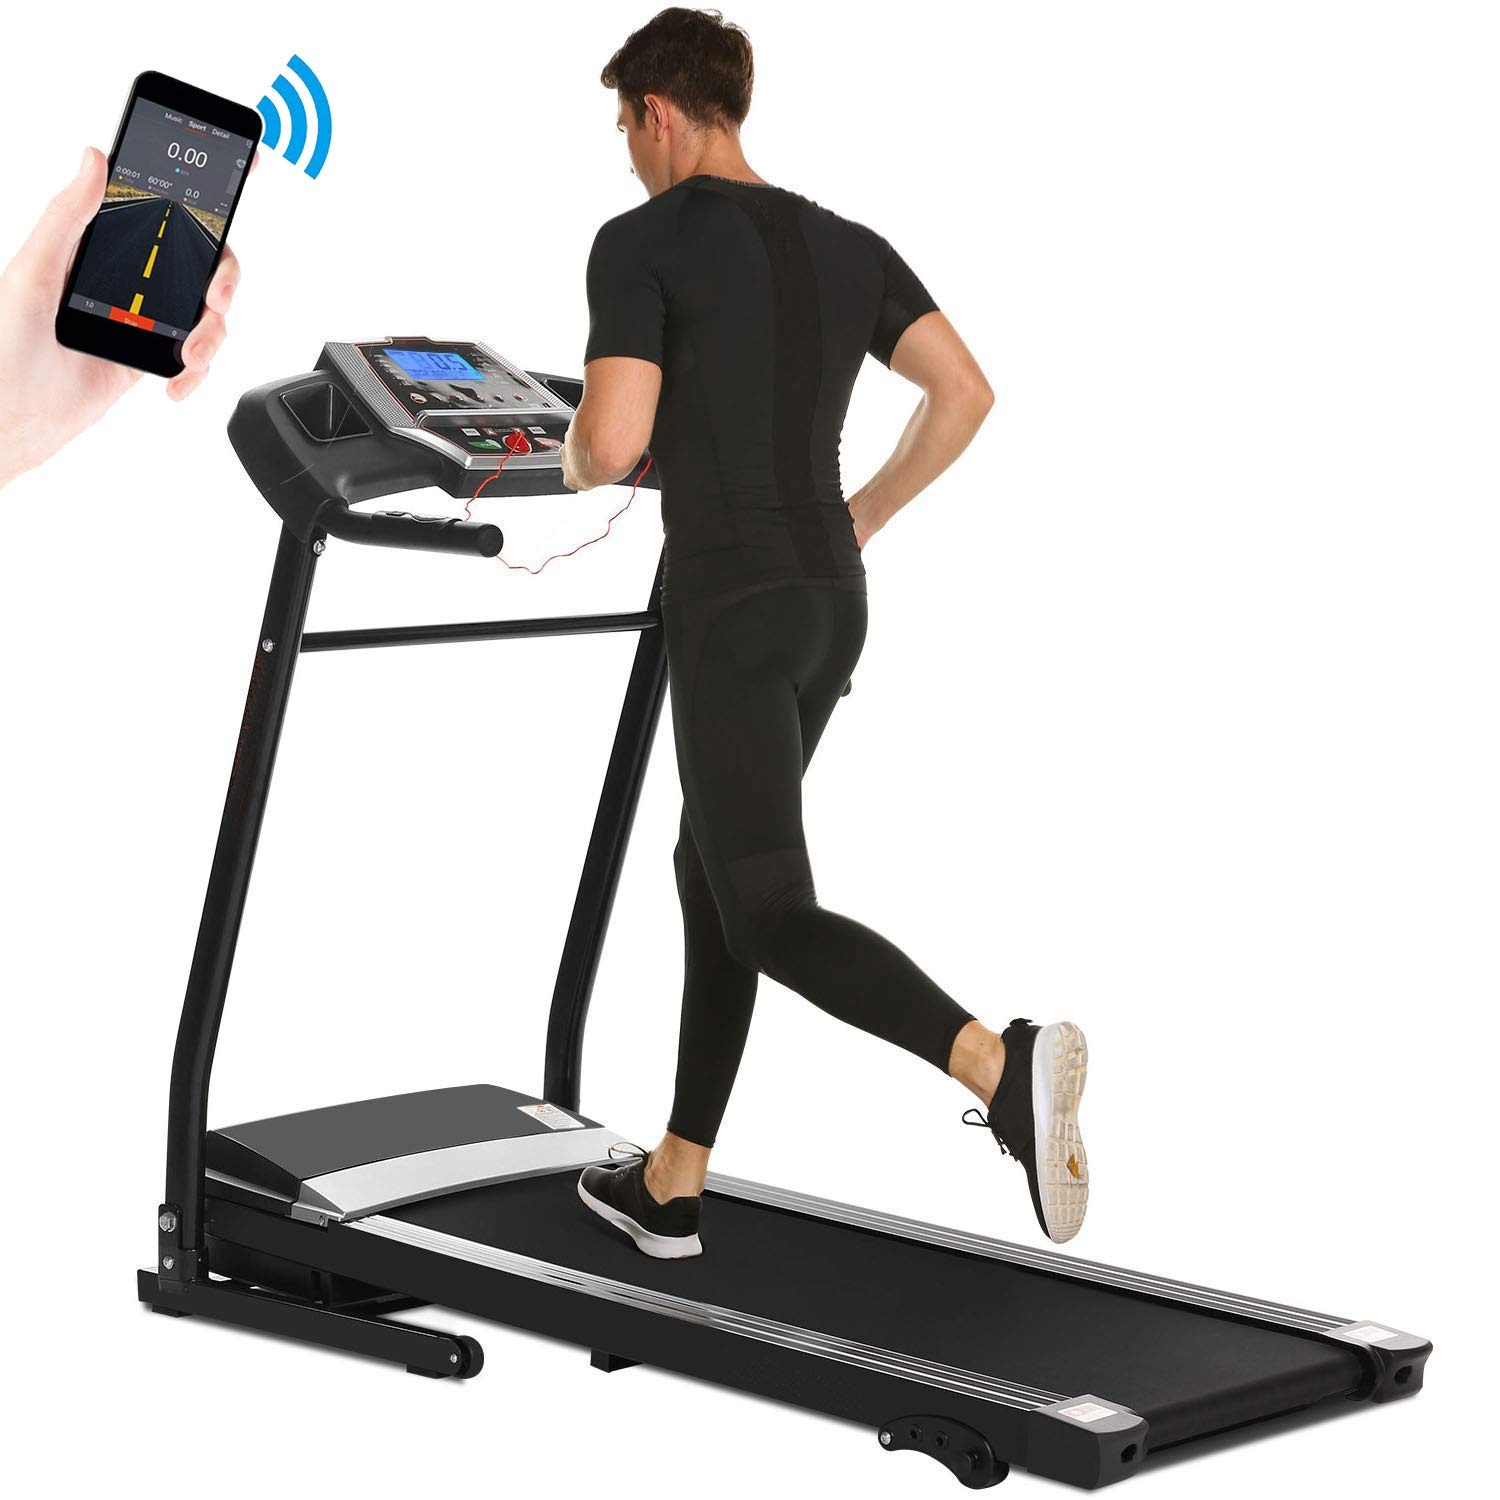 Treadmill For Home Under 500